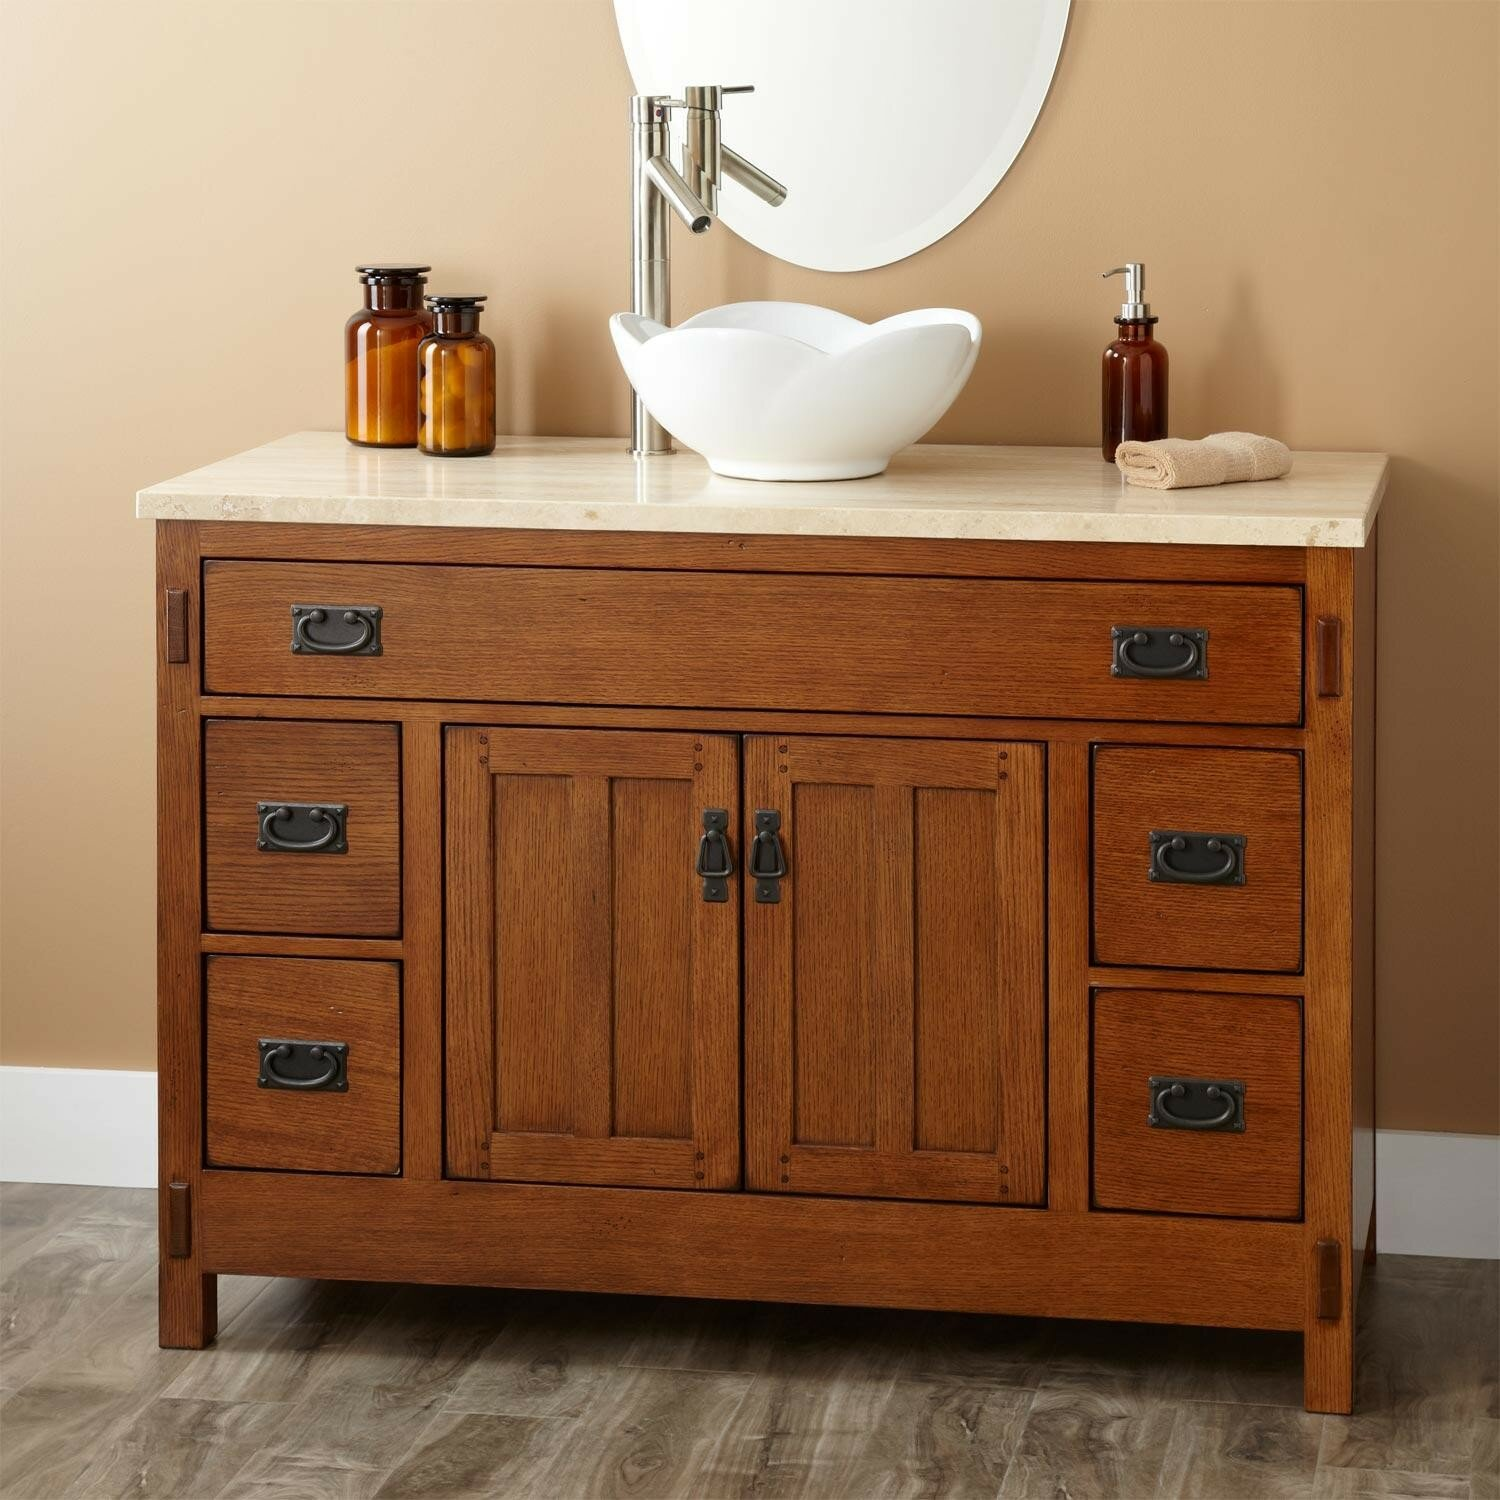 54 Inch Bathroom Vanity Single Sink | Pottery Barn Vanity | Pottery Barn  Newport Vanity